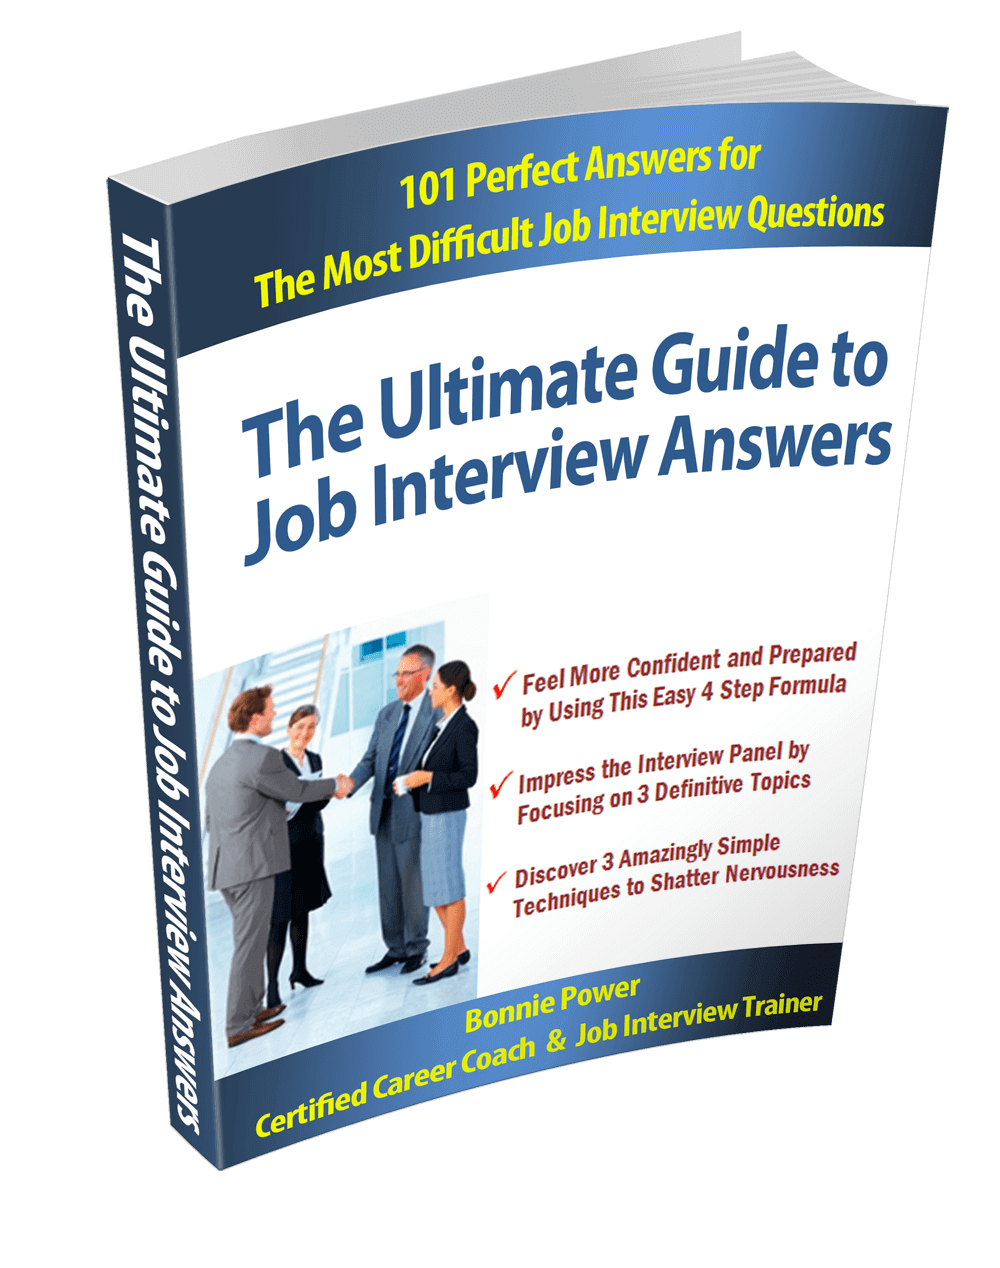 The Ultimate Guide To Job Interview Answers Review – Works or Just a SCAM?